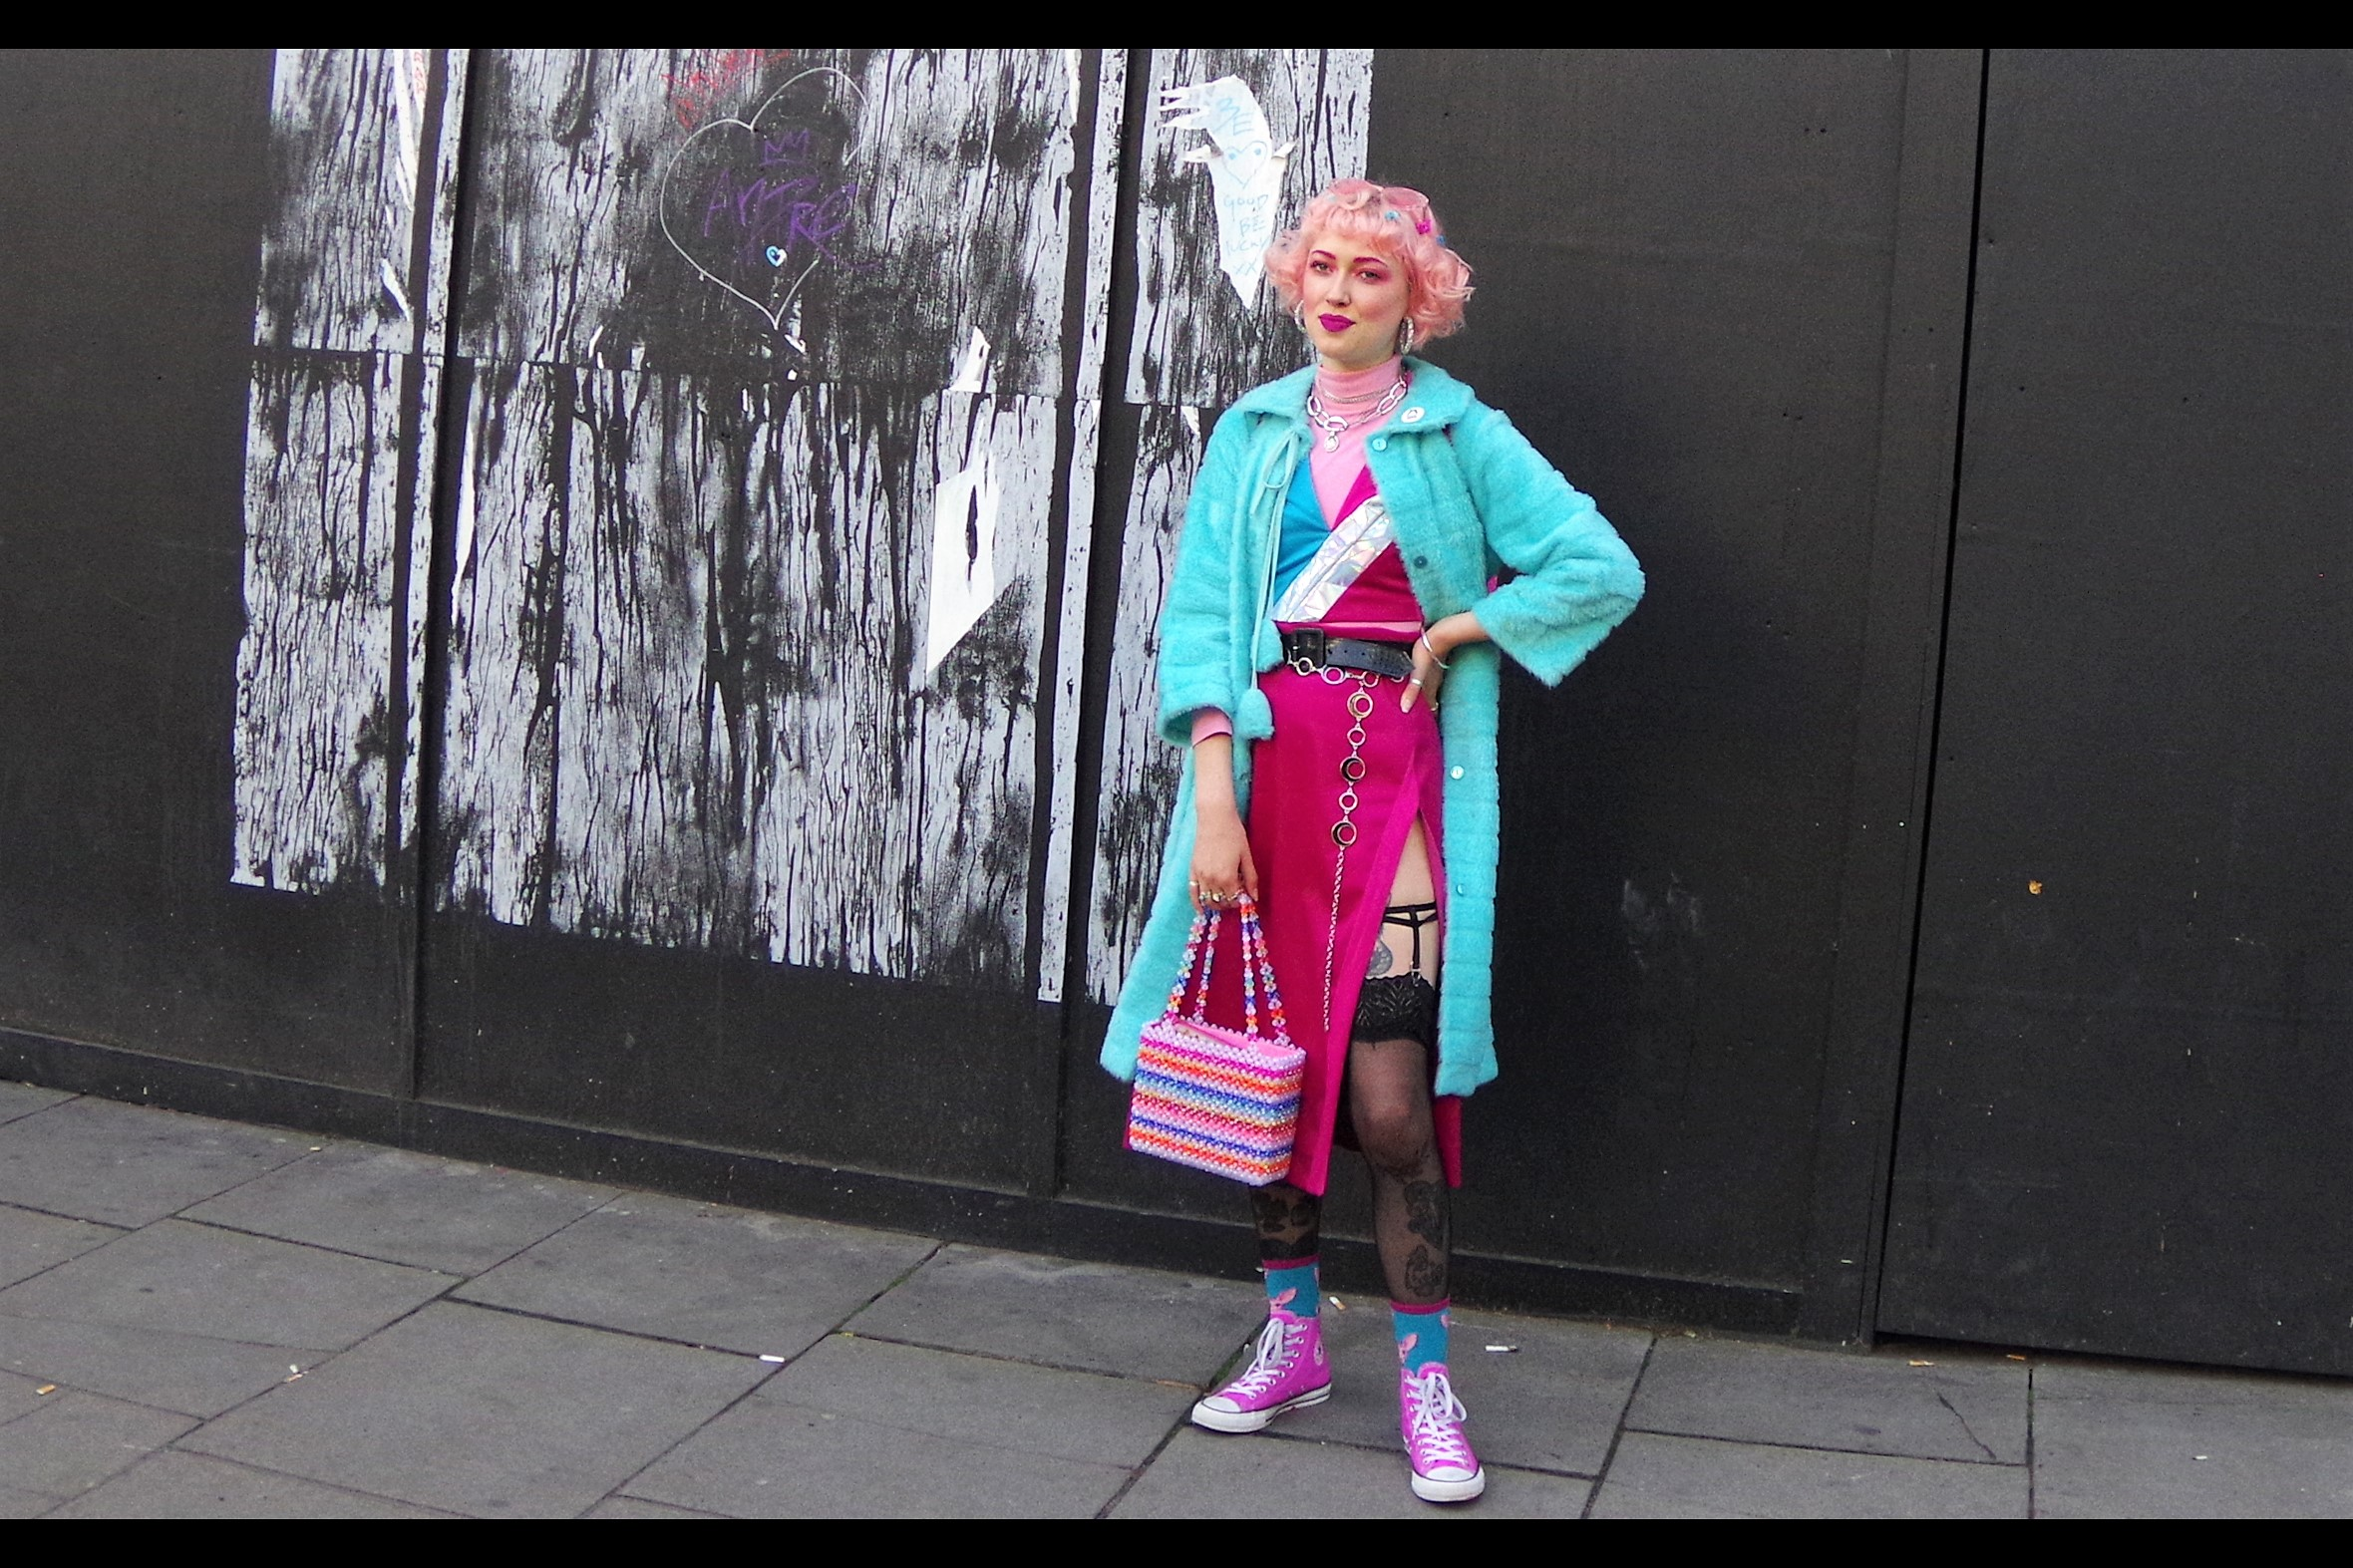 """""""The price of the ensemble I'm wearing is quite reasonable, and if you were to remove the street art behind me carefully enough, its sale would more than pay for it"""""""